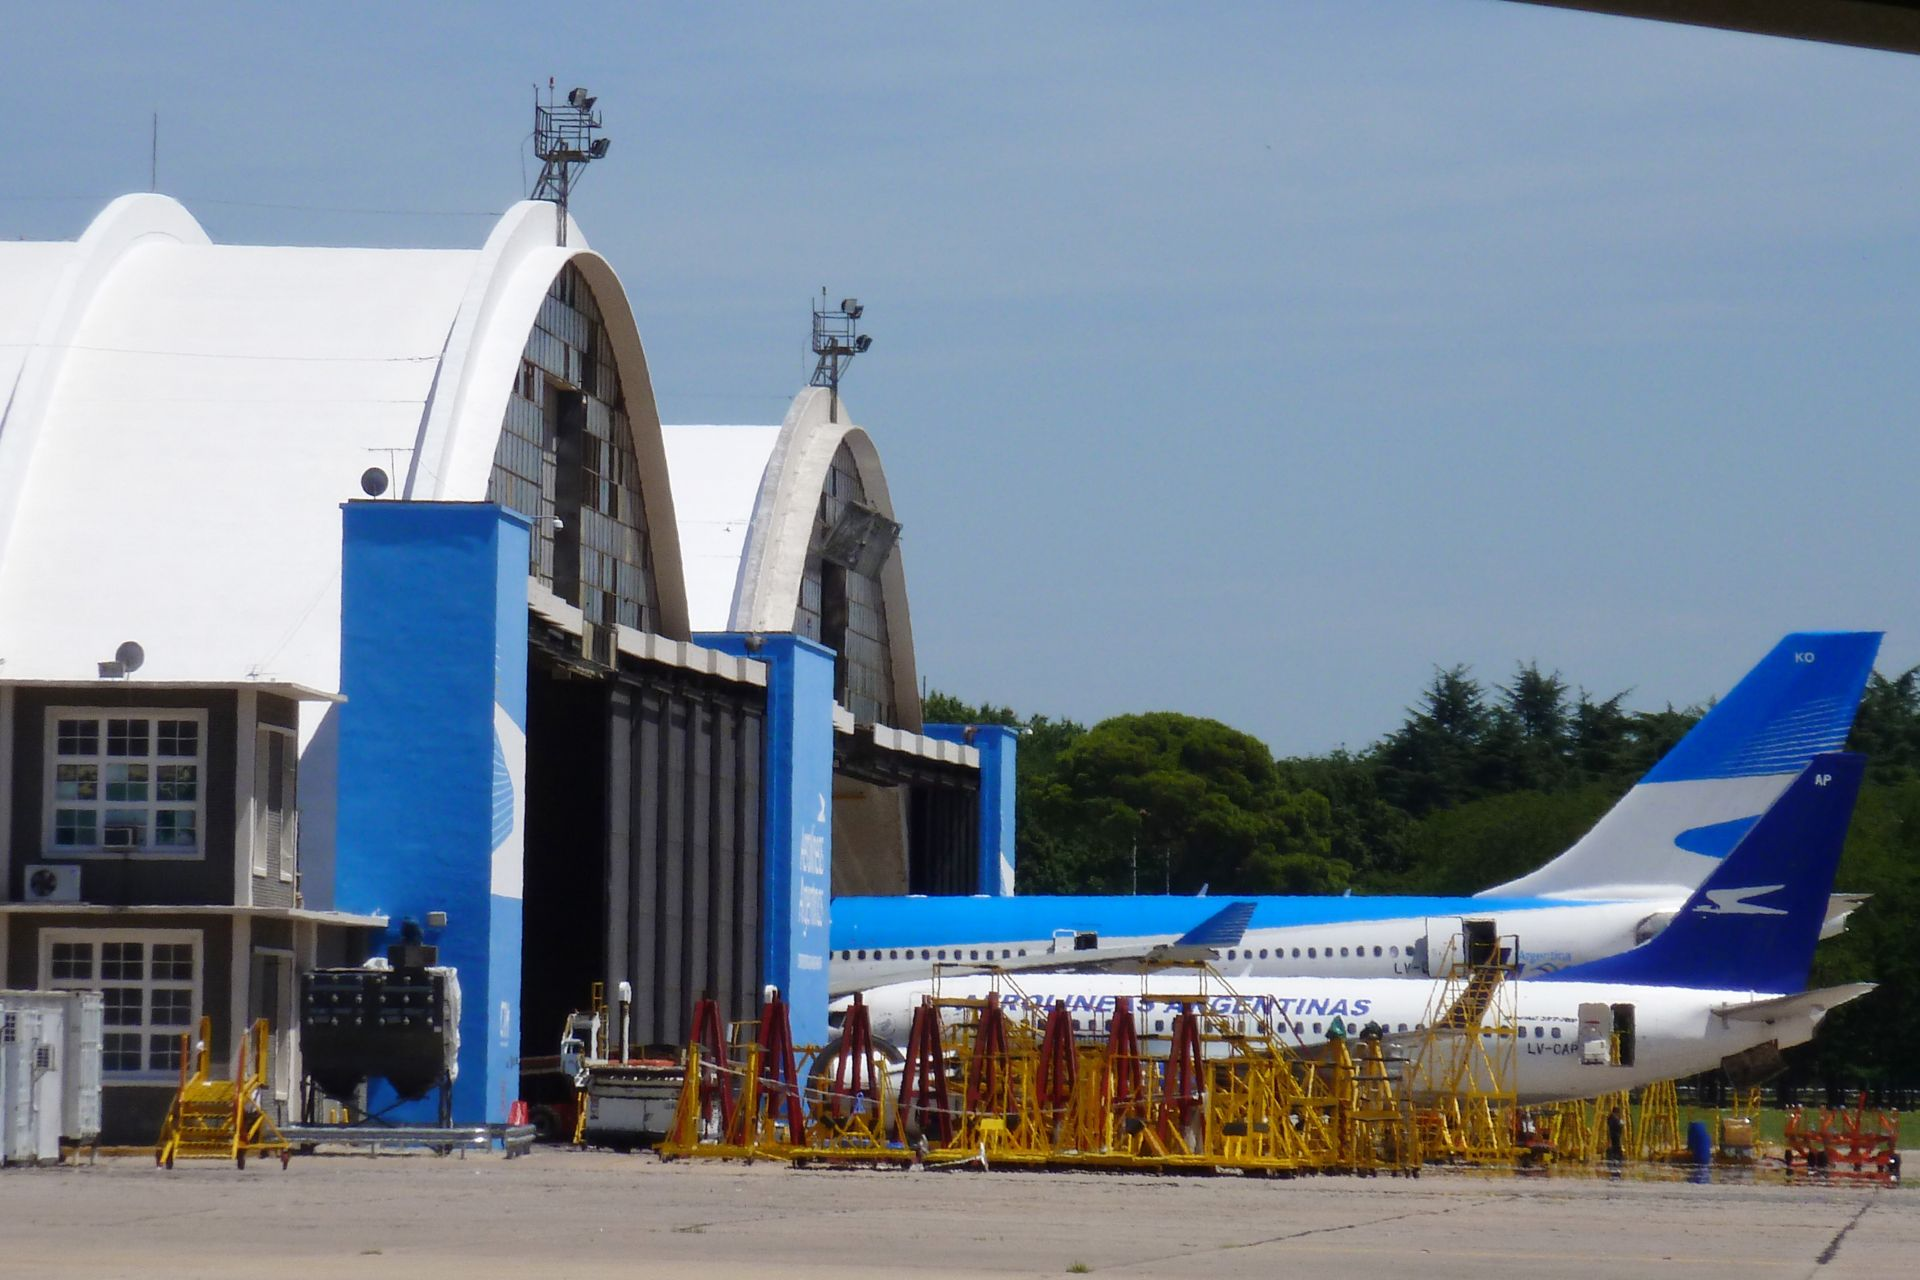 Sika Cool roof applied on a hangar airport in Argentina